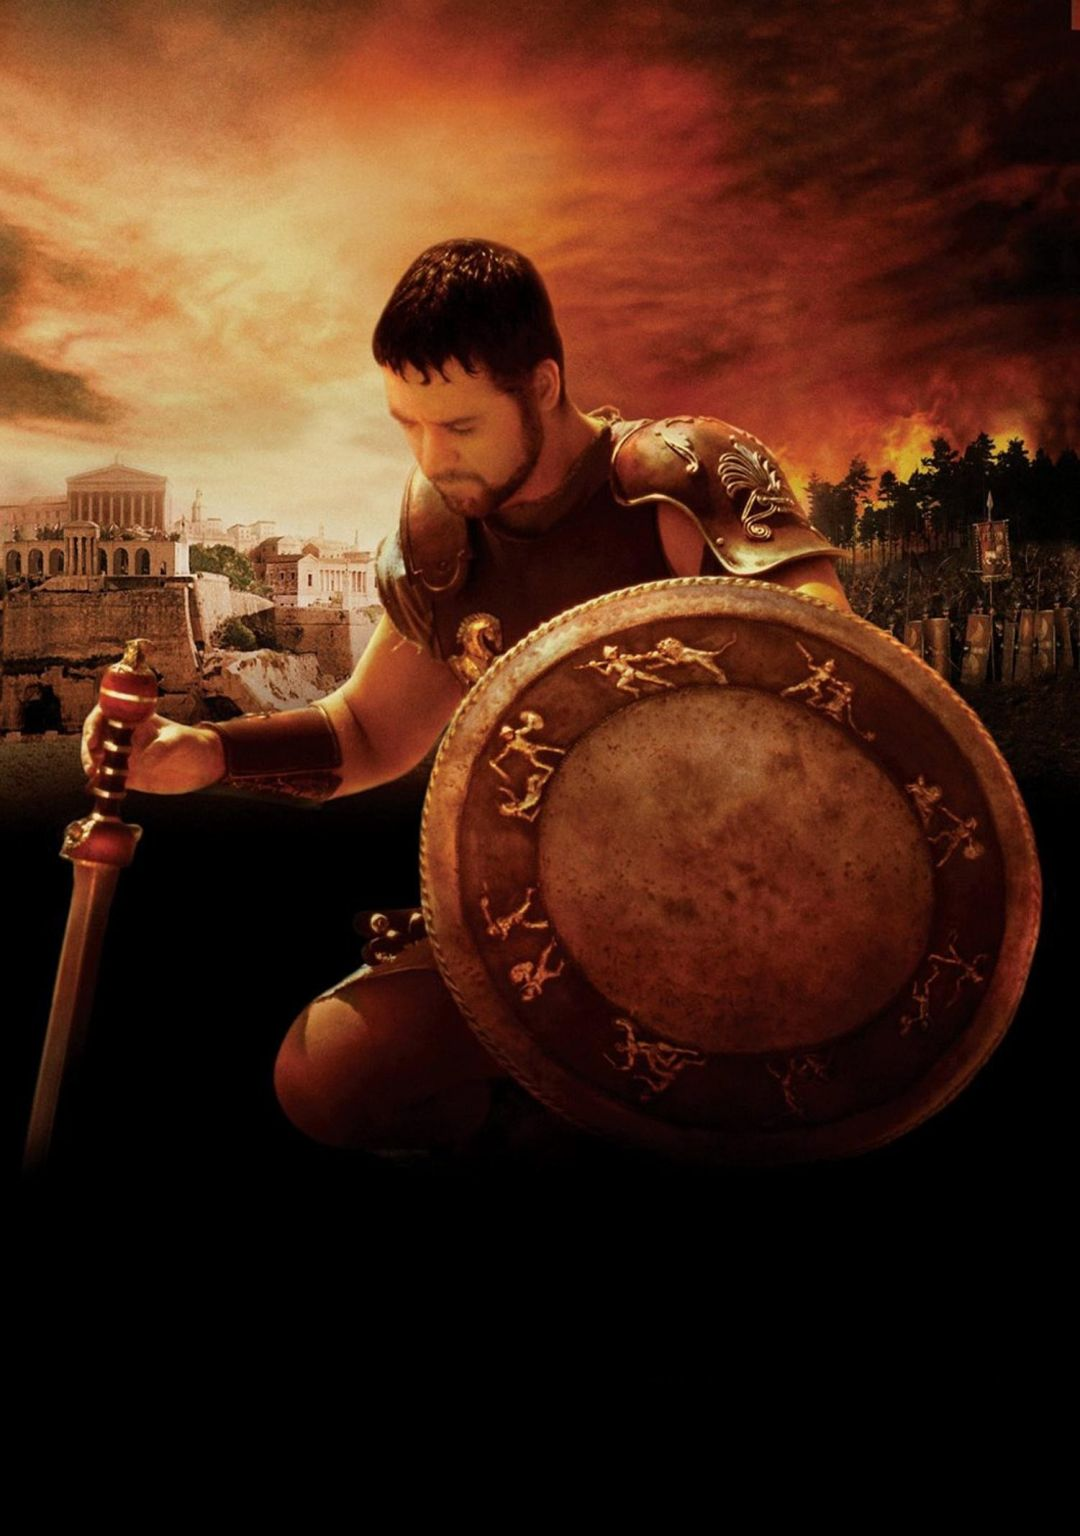 Gladiator hd - Android, iPhone, Desktop HD Backgrounds / Wallpapers (1080p, 4k) (458056) - Movies / TV